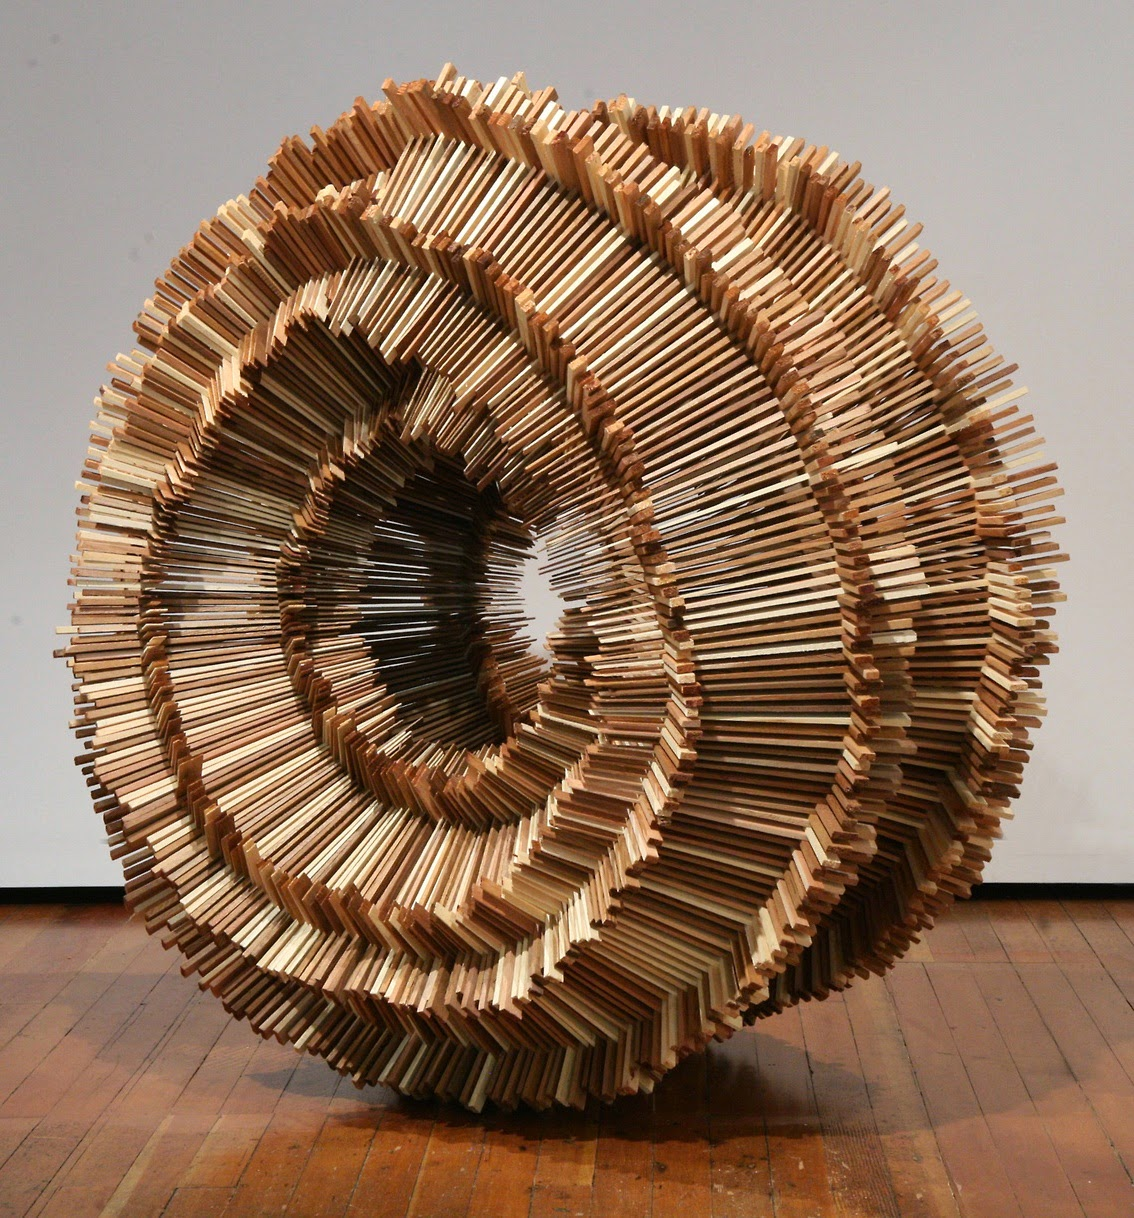 simply creative wooden sculptures by ben butler